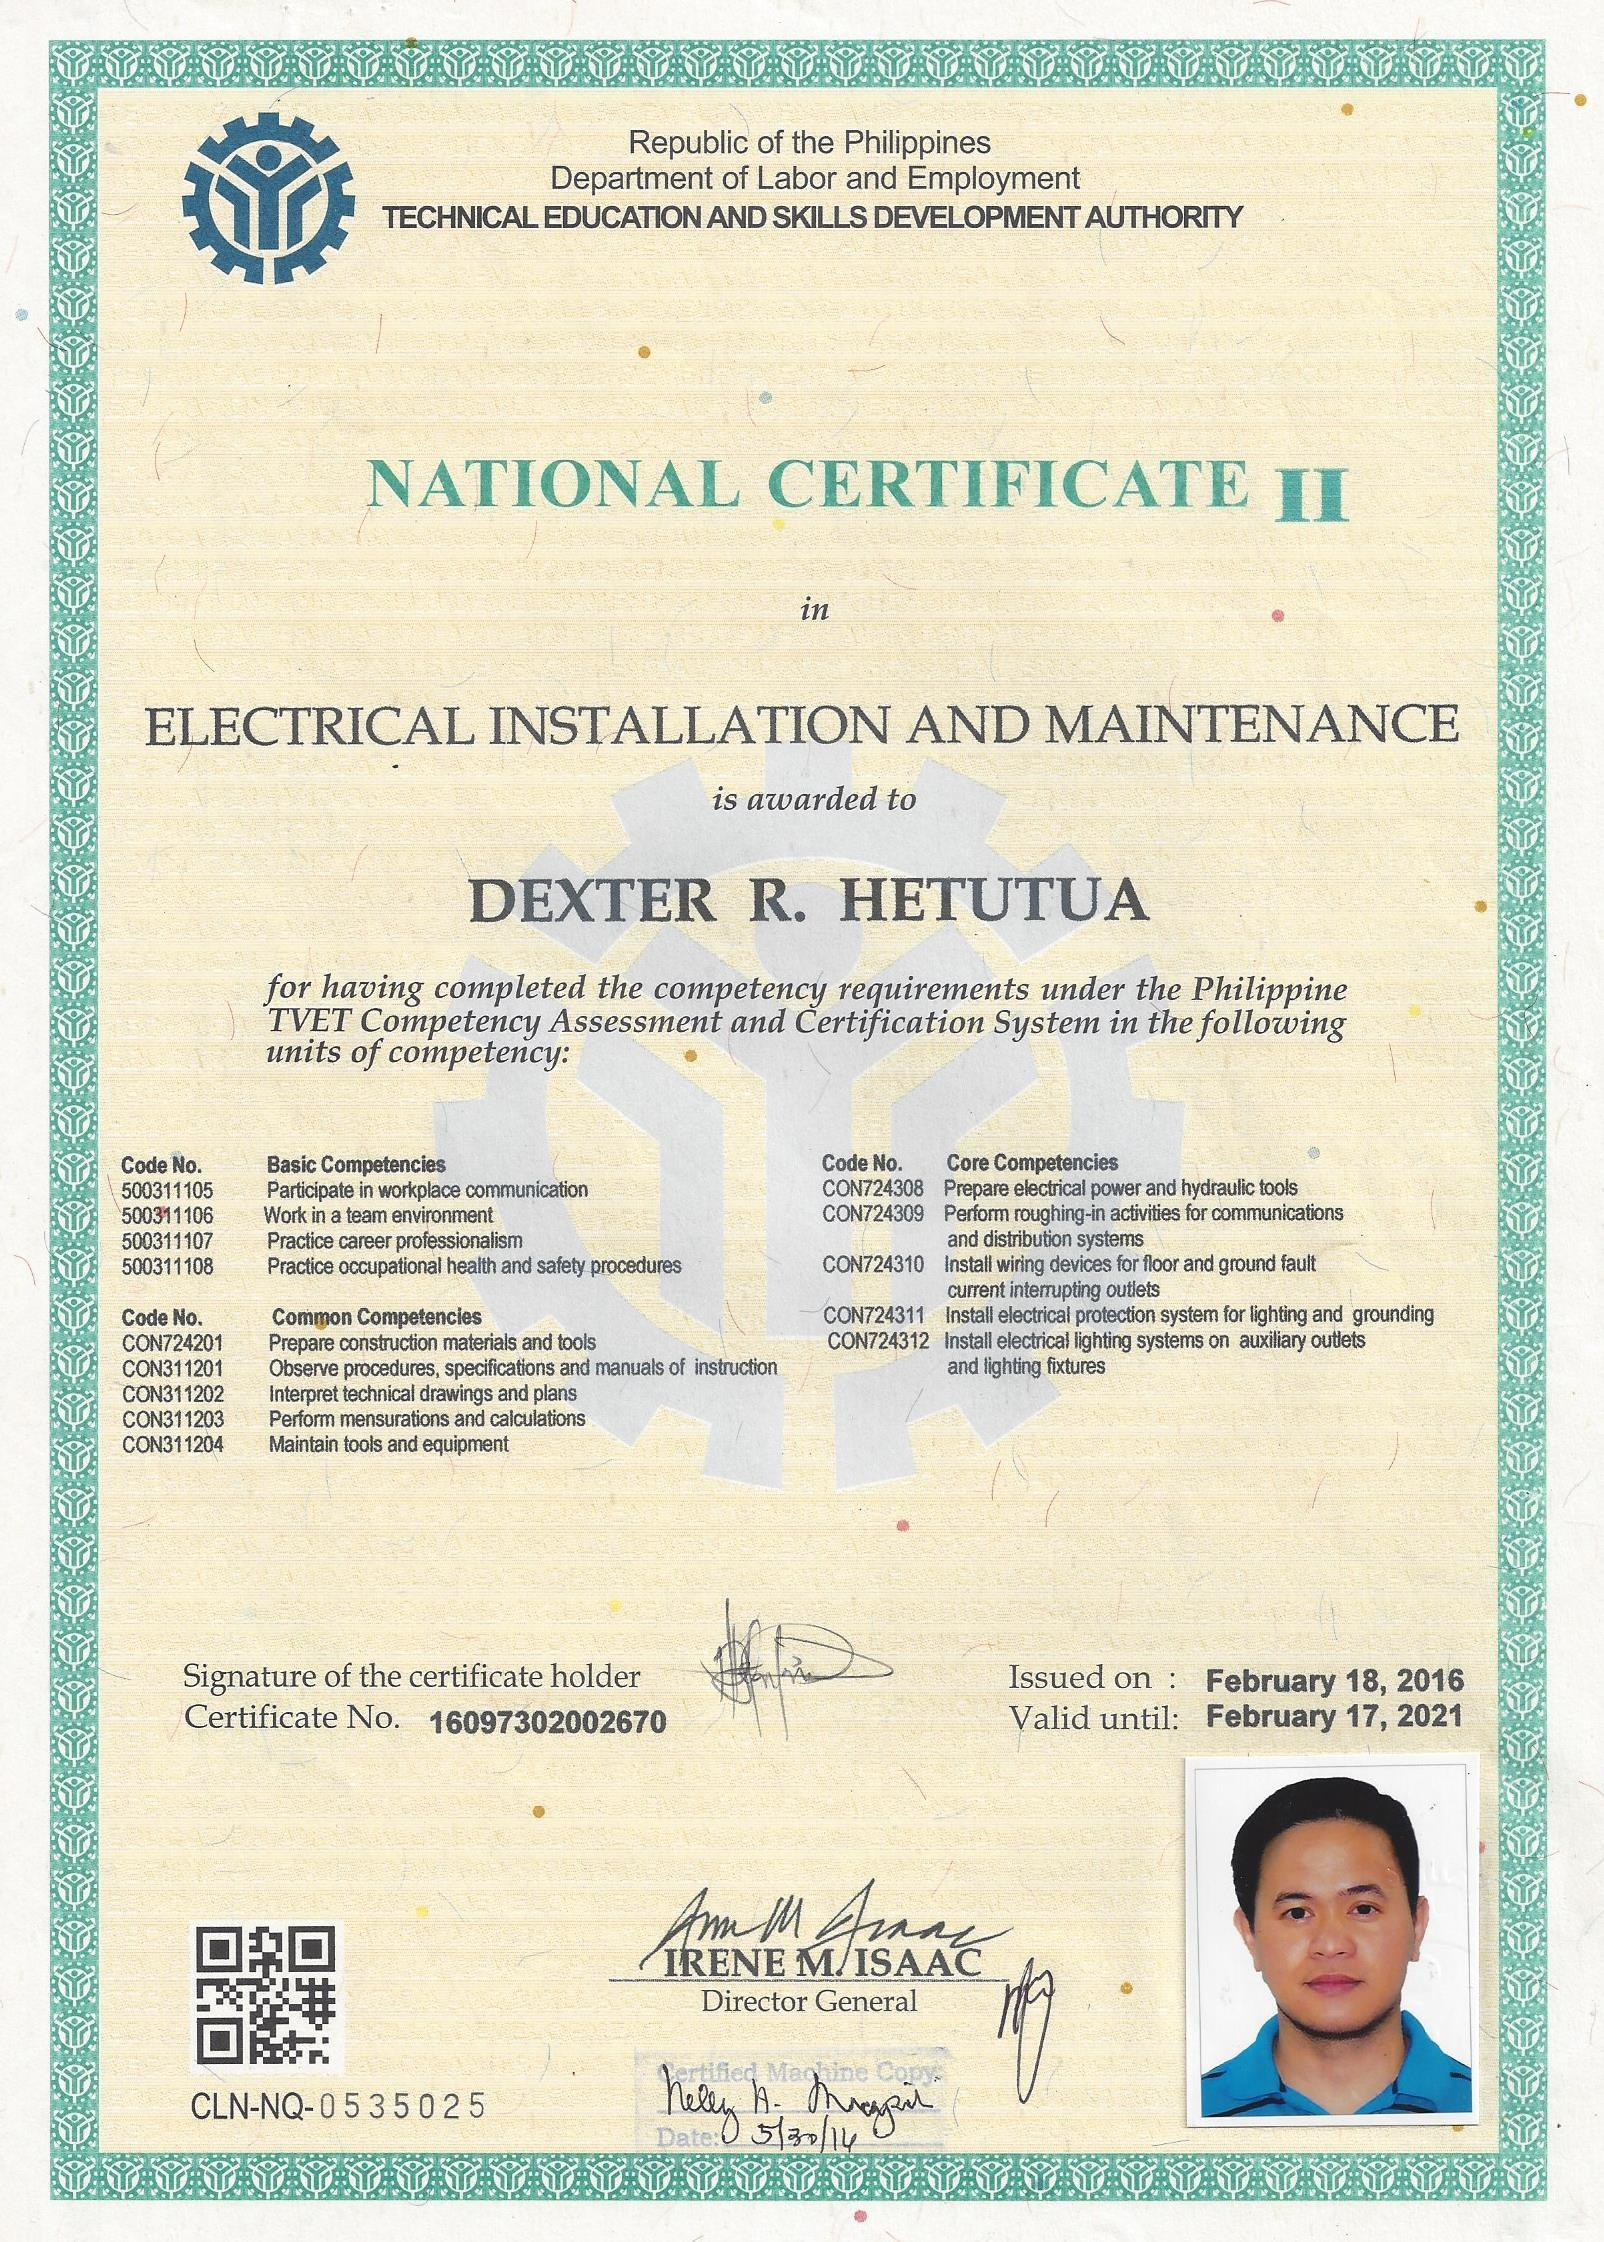 Dexter hetutua bayt electrical installation and maintenance nc ii certificate xflitez Image collections